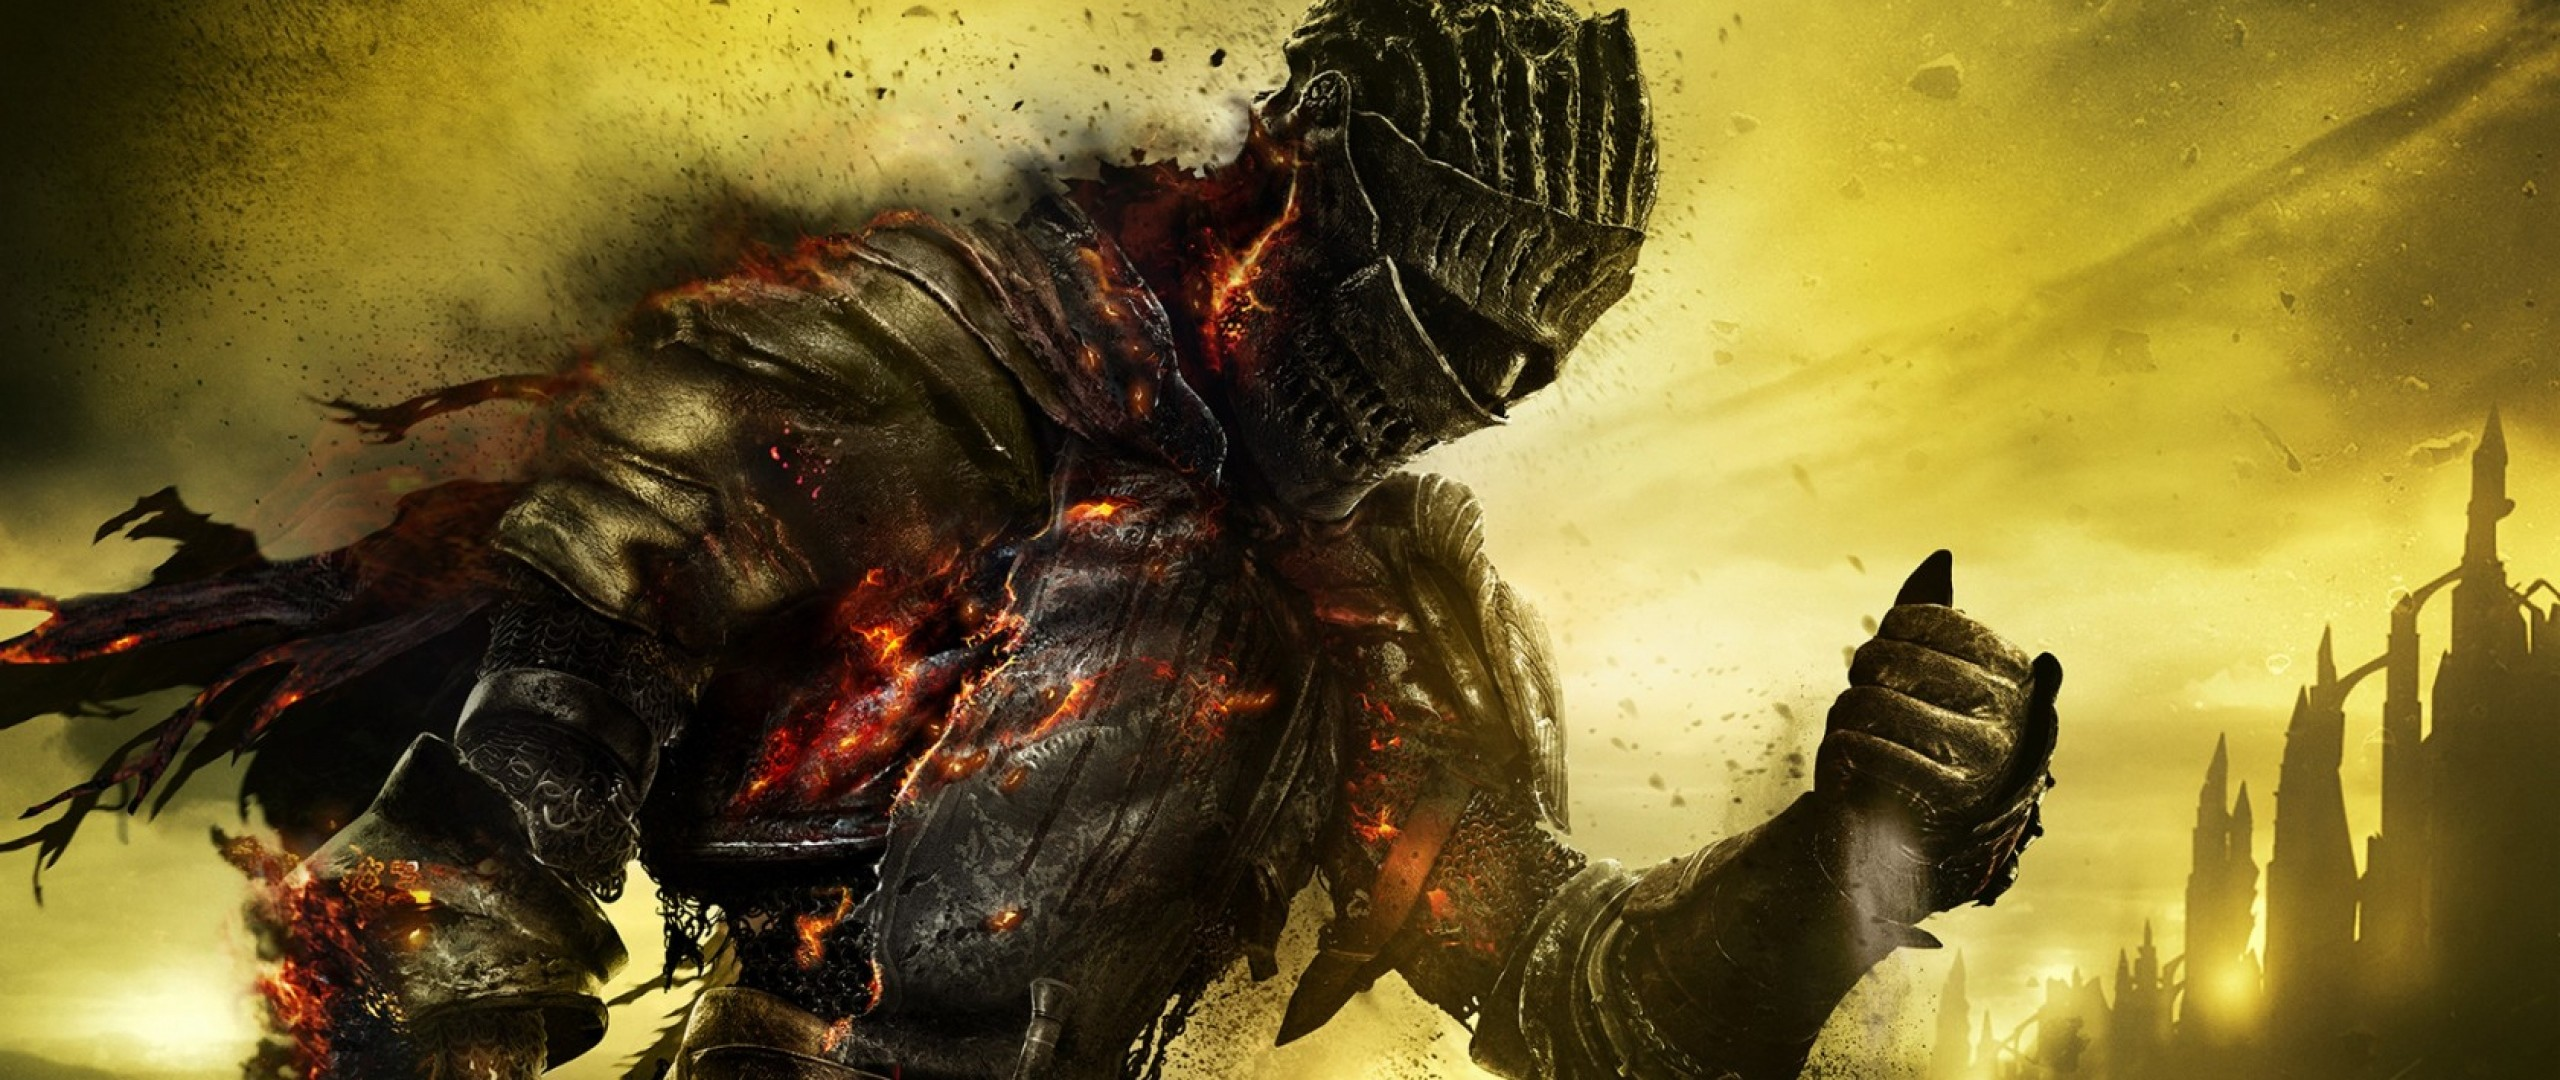 2560x1080 Preview wallpaper dark souls 3, armor, warrior, fire, ash, art